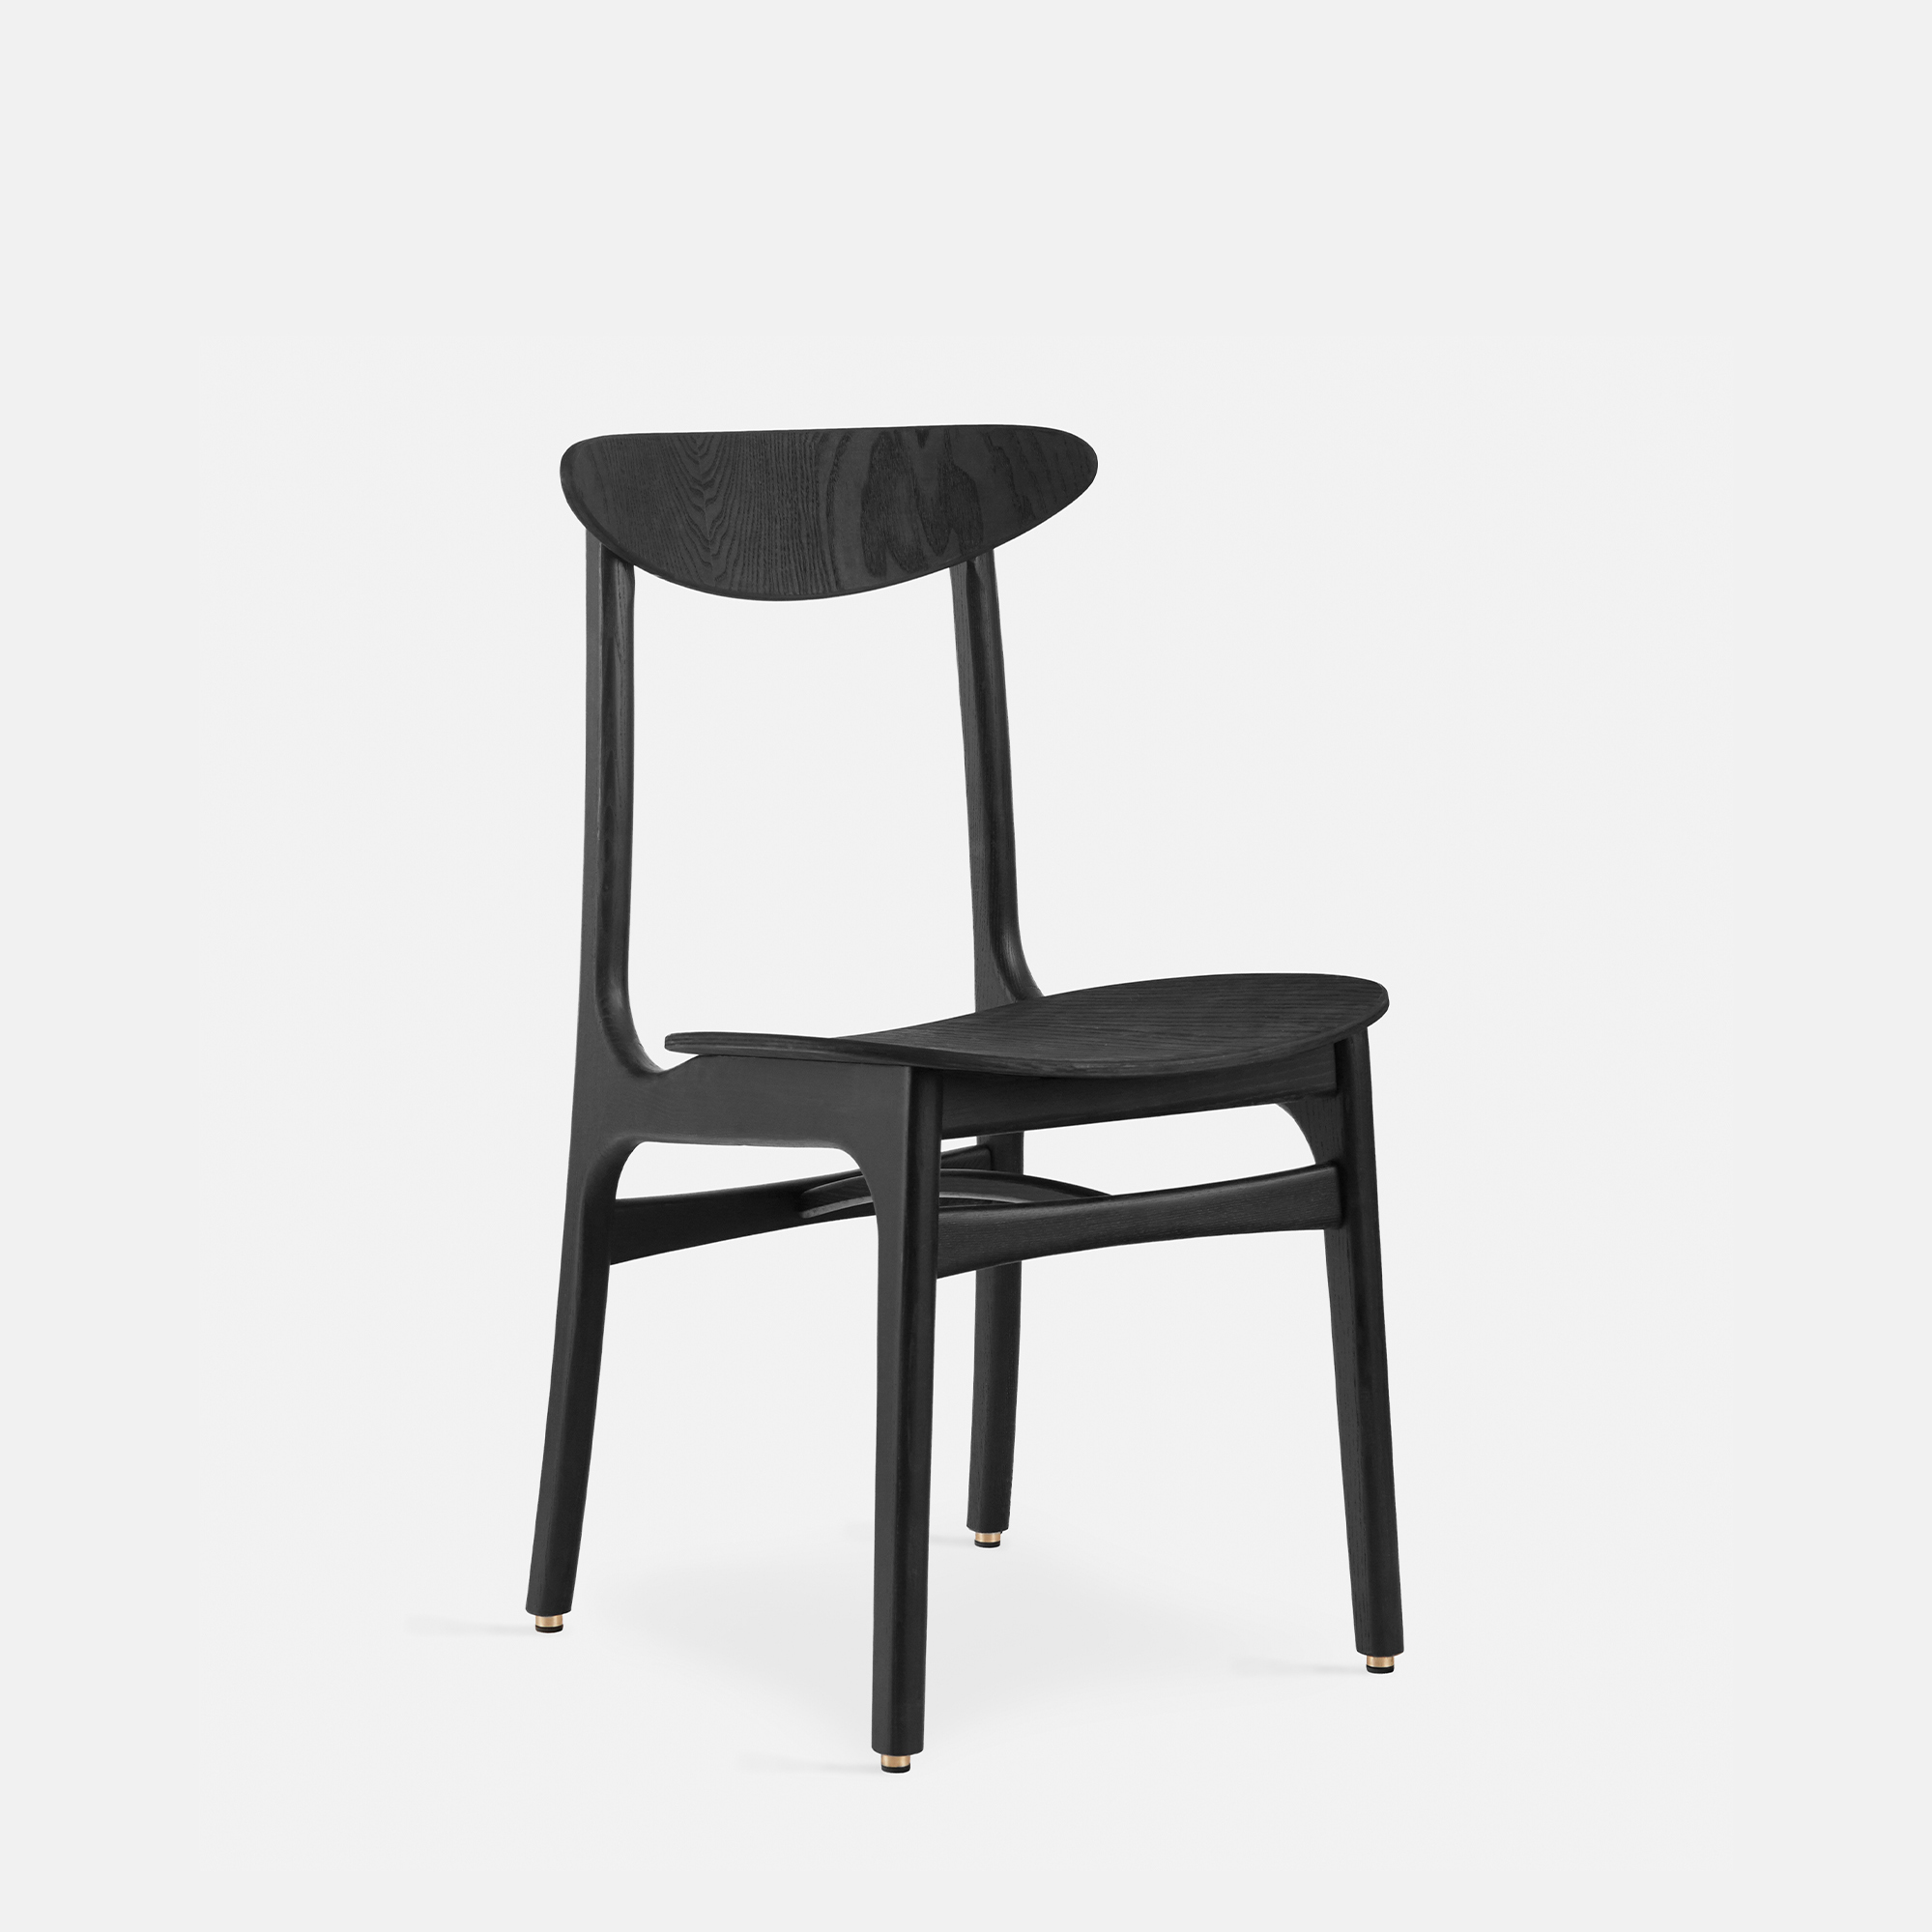 366-Concept-200-190-Chair-Timber-W04